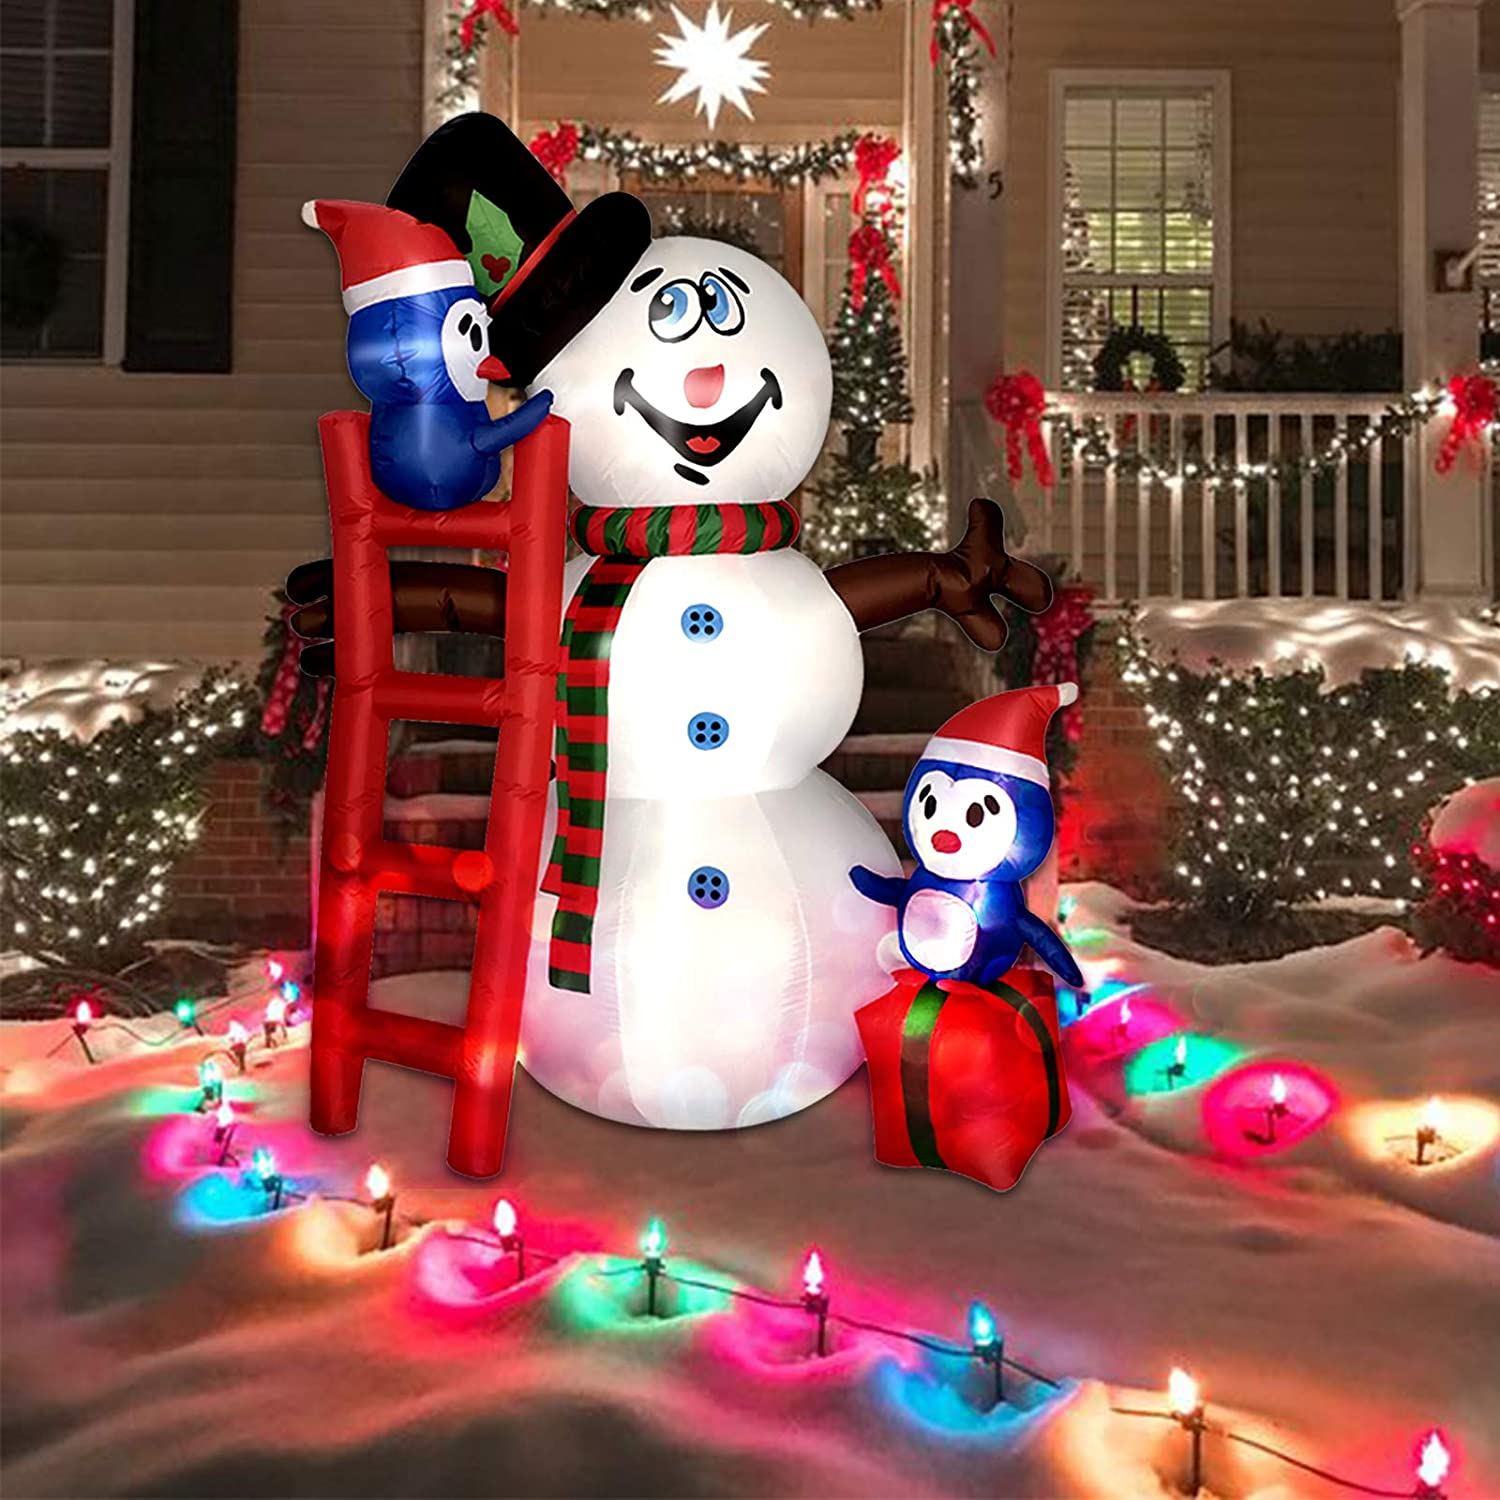 Kyerivs NEW before selling ☆ 6 FT Christmas Inflatables Max 62% OFF Blow Outdoor S Up Decorations